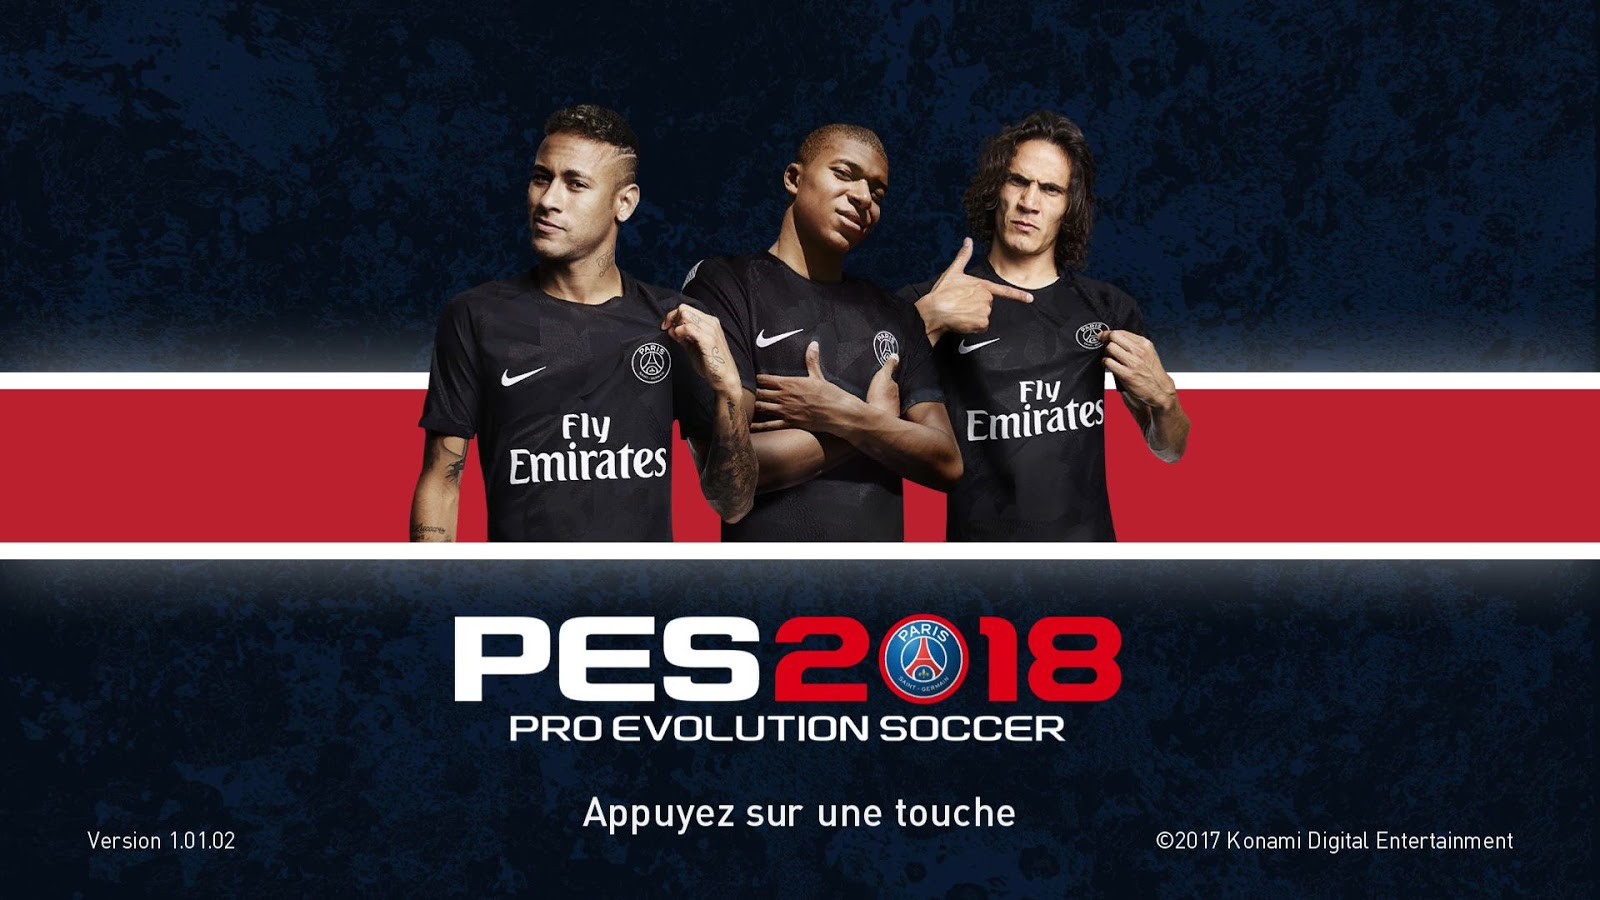 rc kit with Pes 2018 Psg Start Screen By Ali Ahmed on Trd Japan 2017 2018 Lexus Is F Sport Rear Spoiler furthermore Convite De Crisma together with Frozen furthermore Pes 2018 Psg Start Screen By Ali Ahmed additionally 5716 Unicorno Palloncino Mylar.